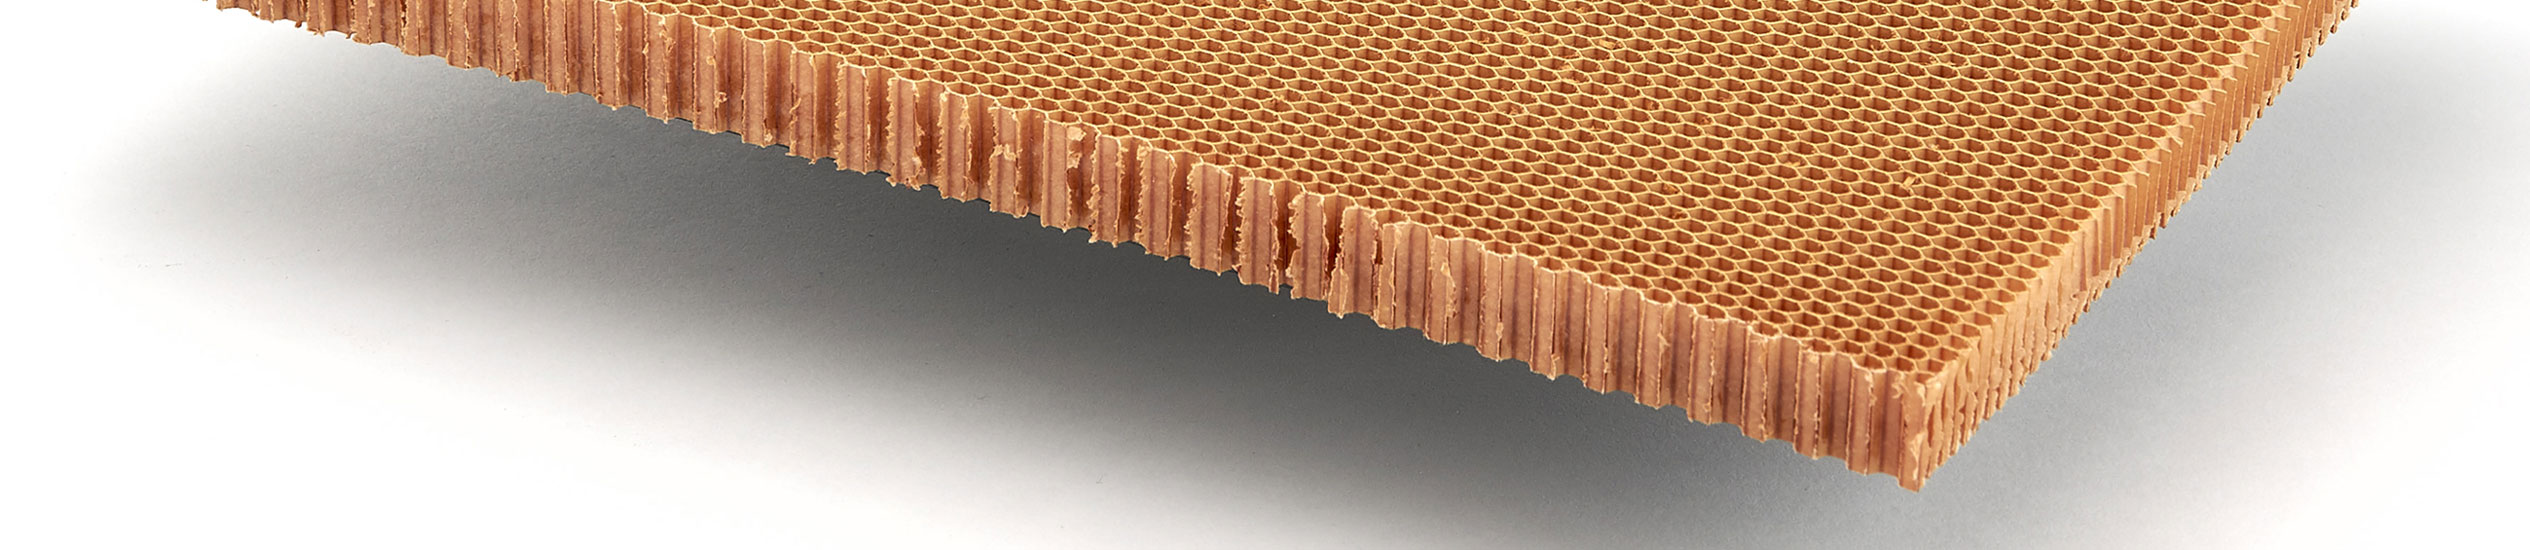 This core material offers unique combination of properties which allows superior electrical insulation.